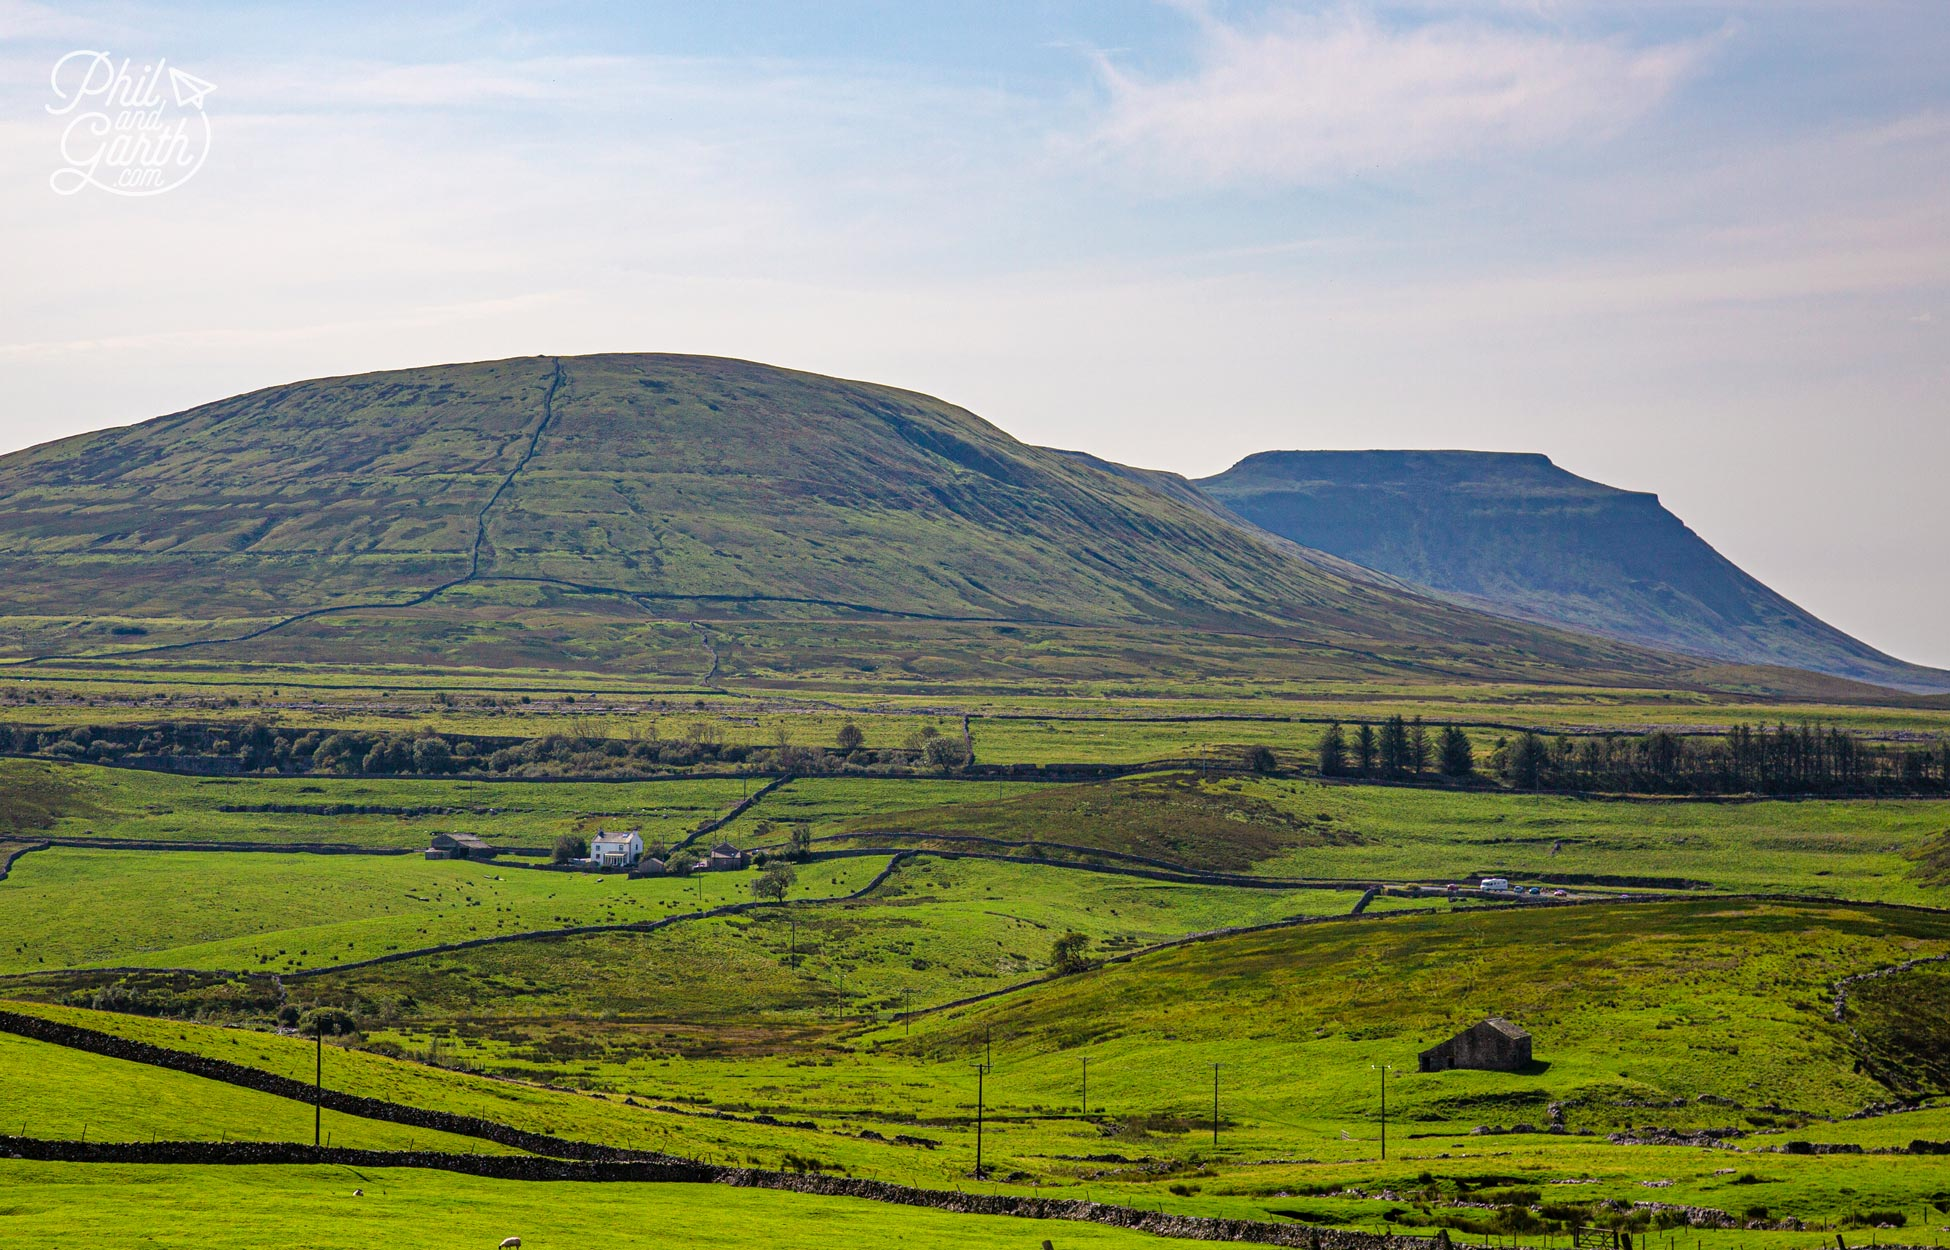 Ribblesdale - home of the 'Three Peaks Challenge'